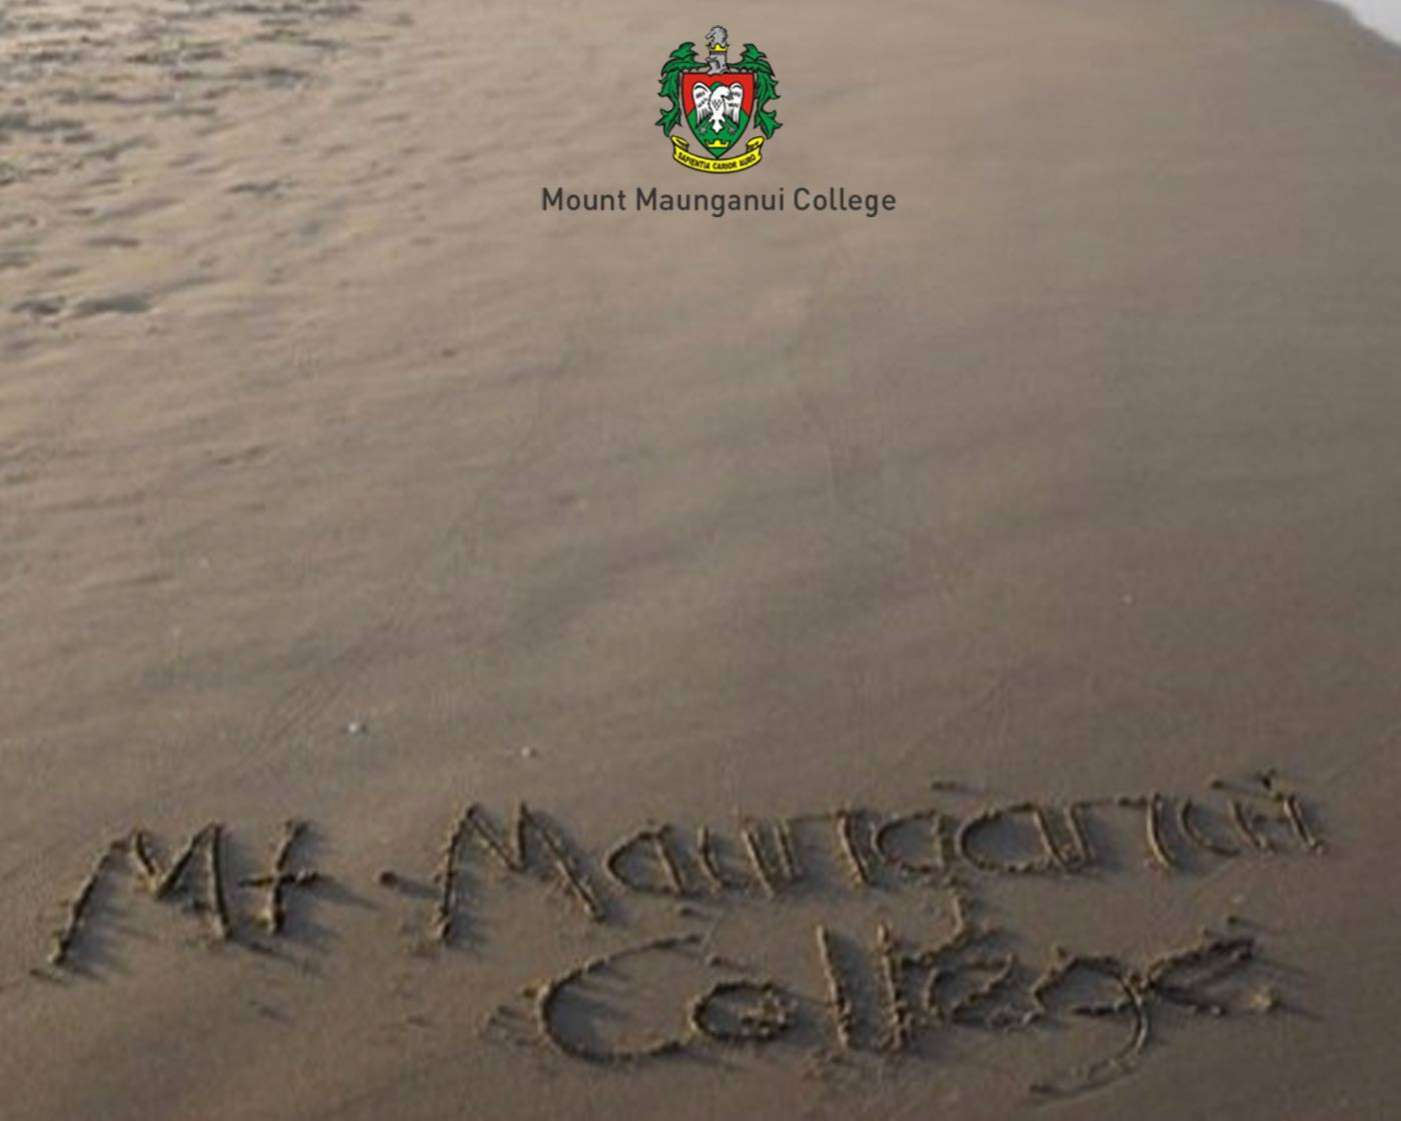 New Client: Mount Maunganui College